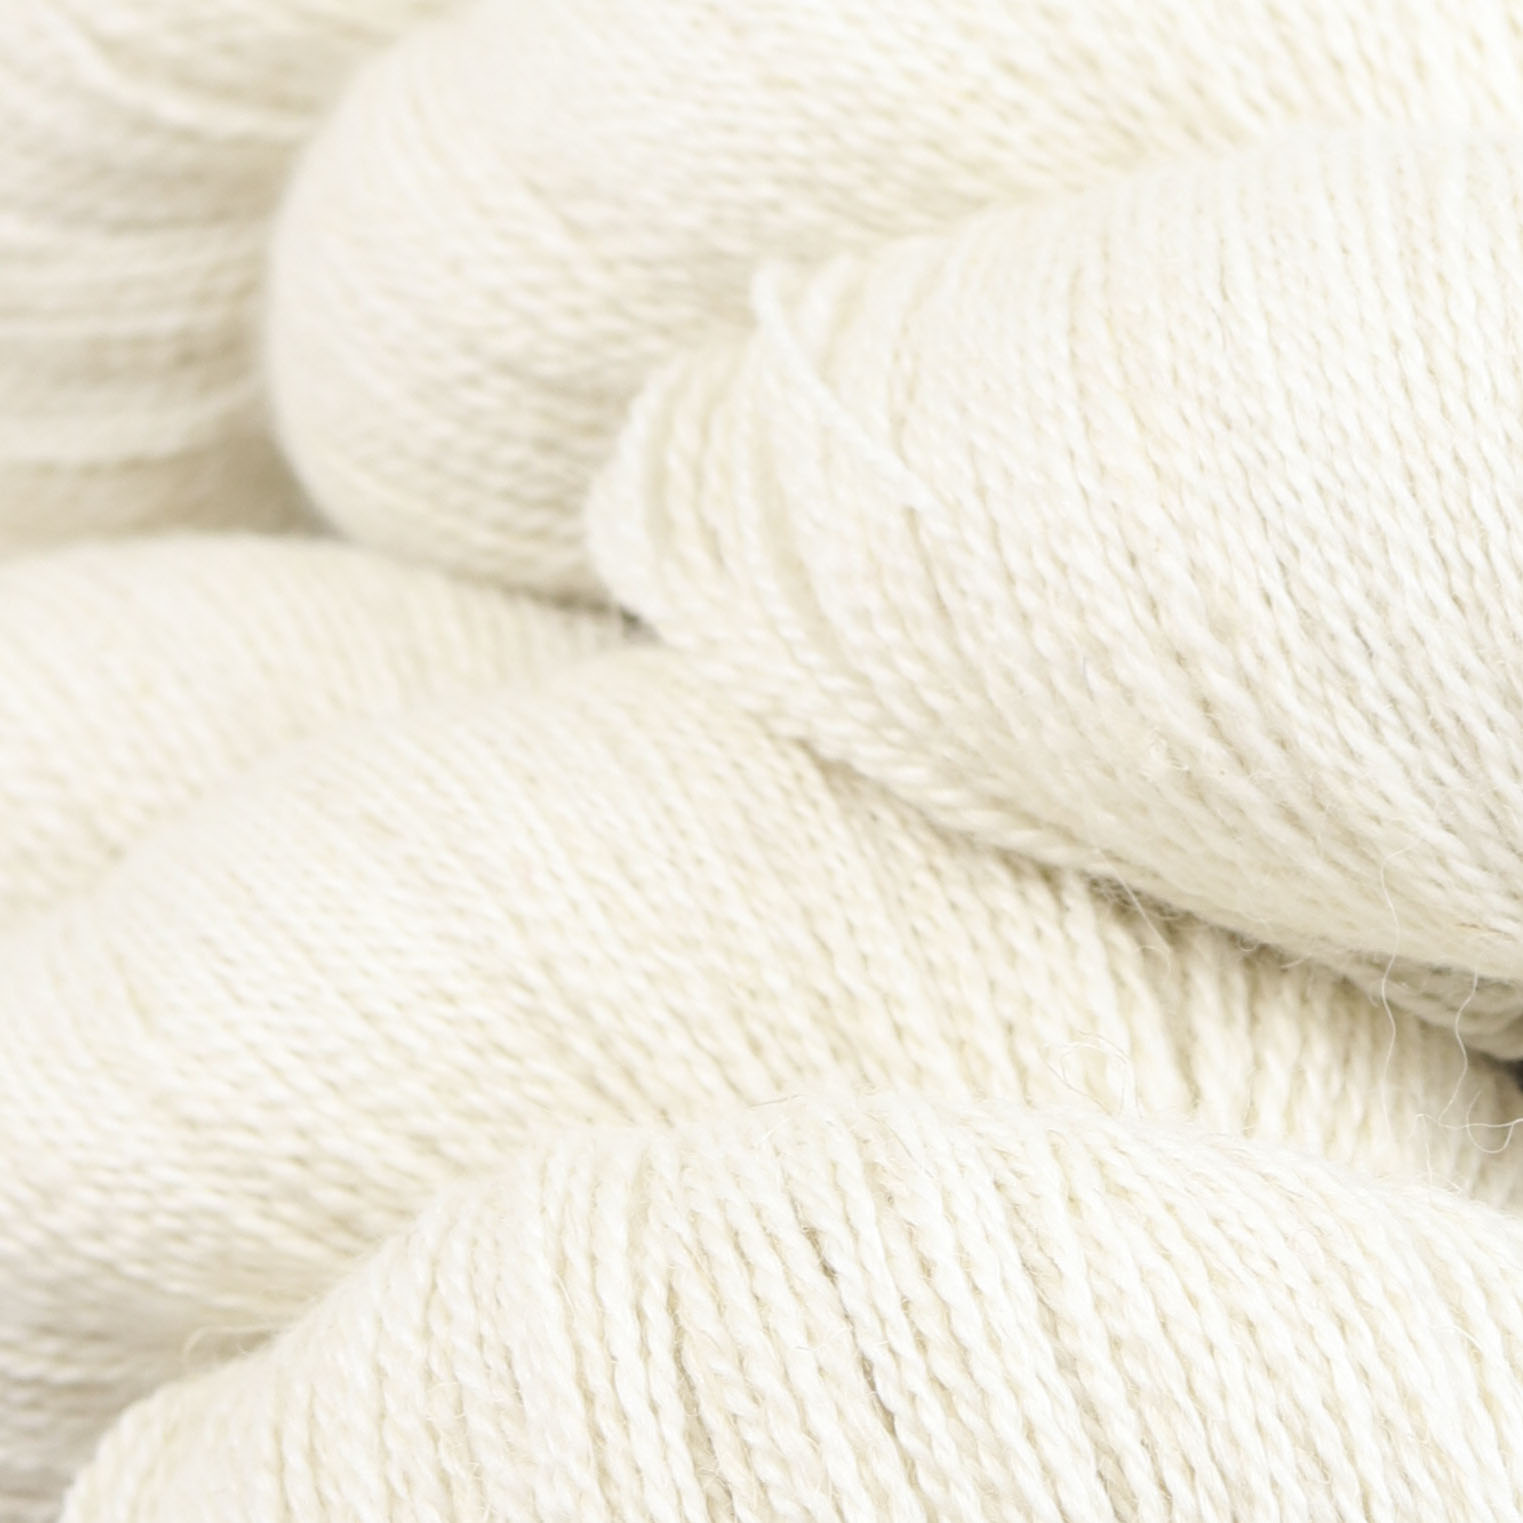 Queen Anne's Lace swatch